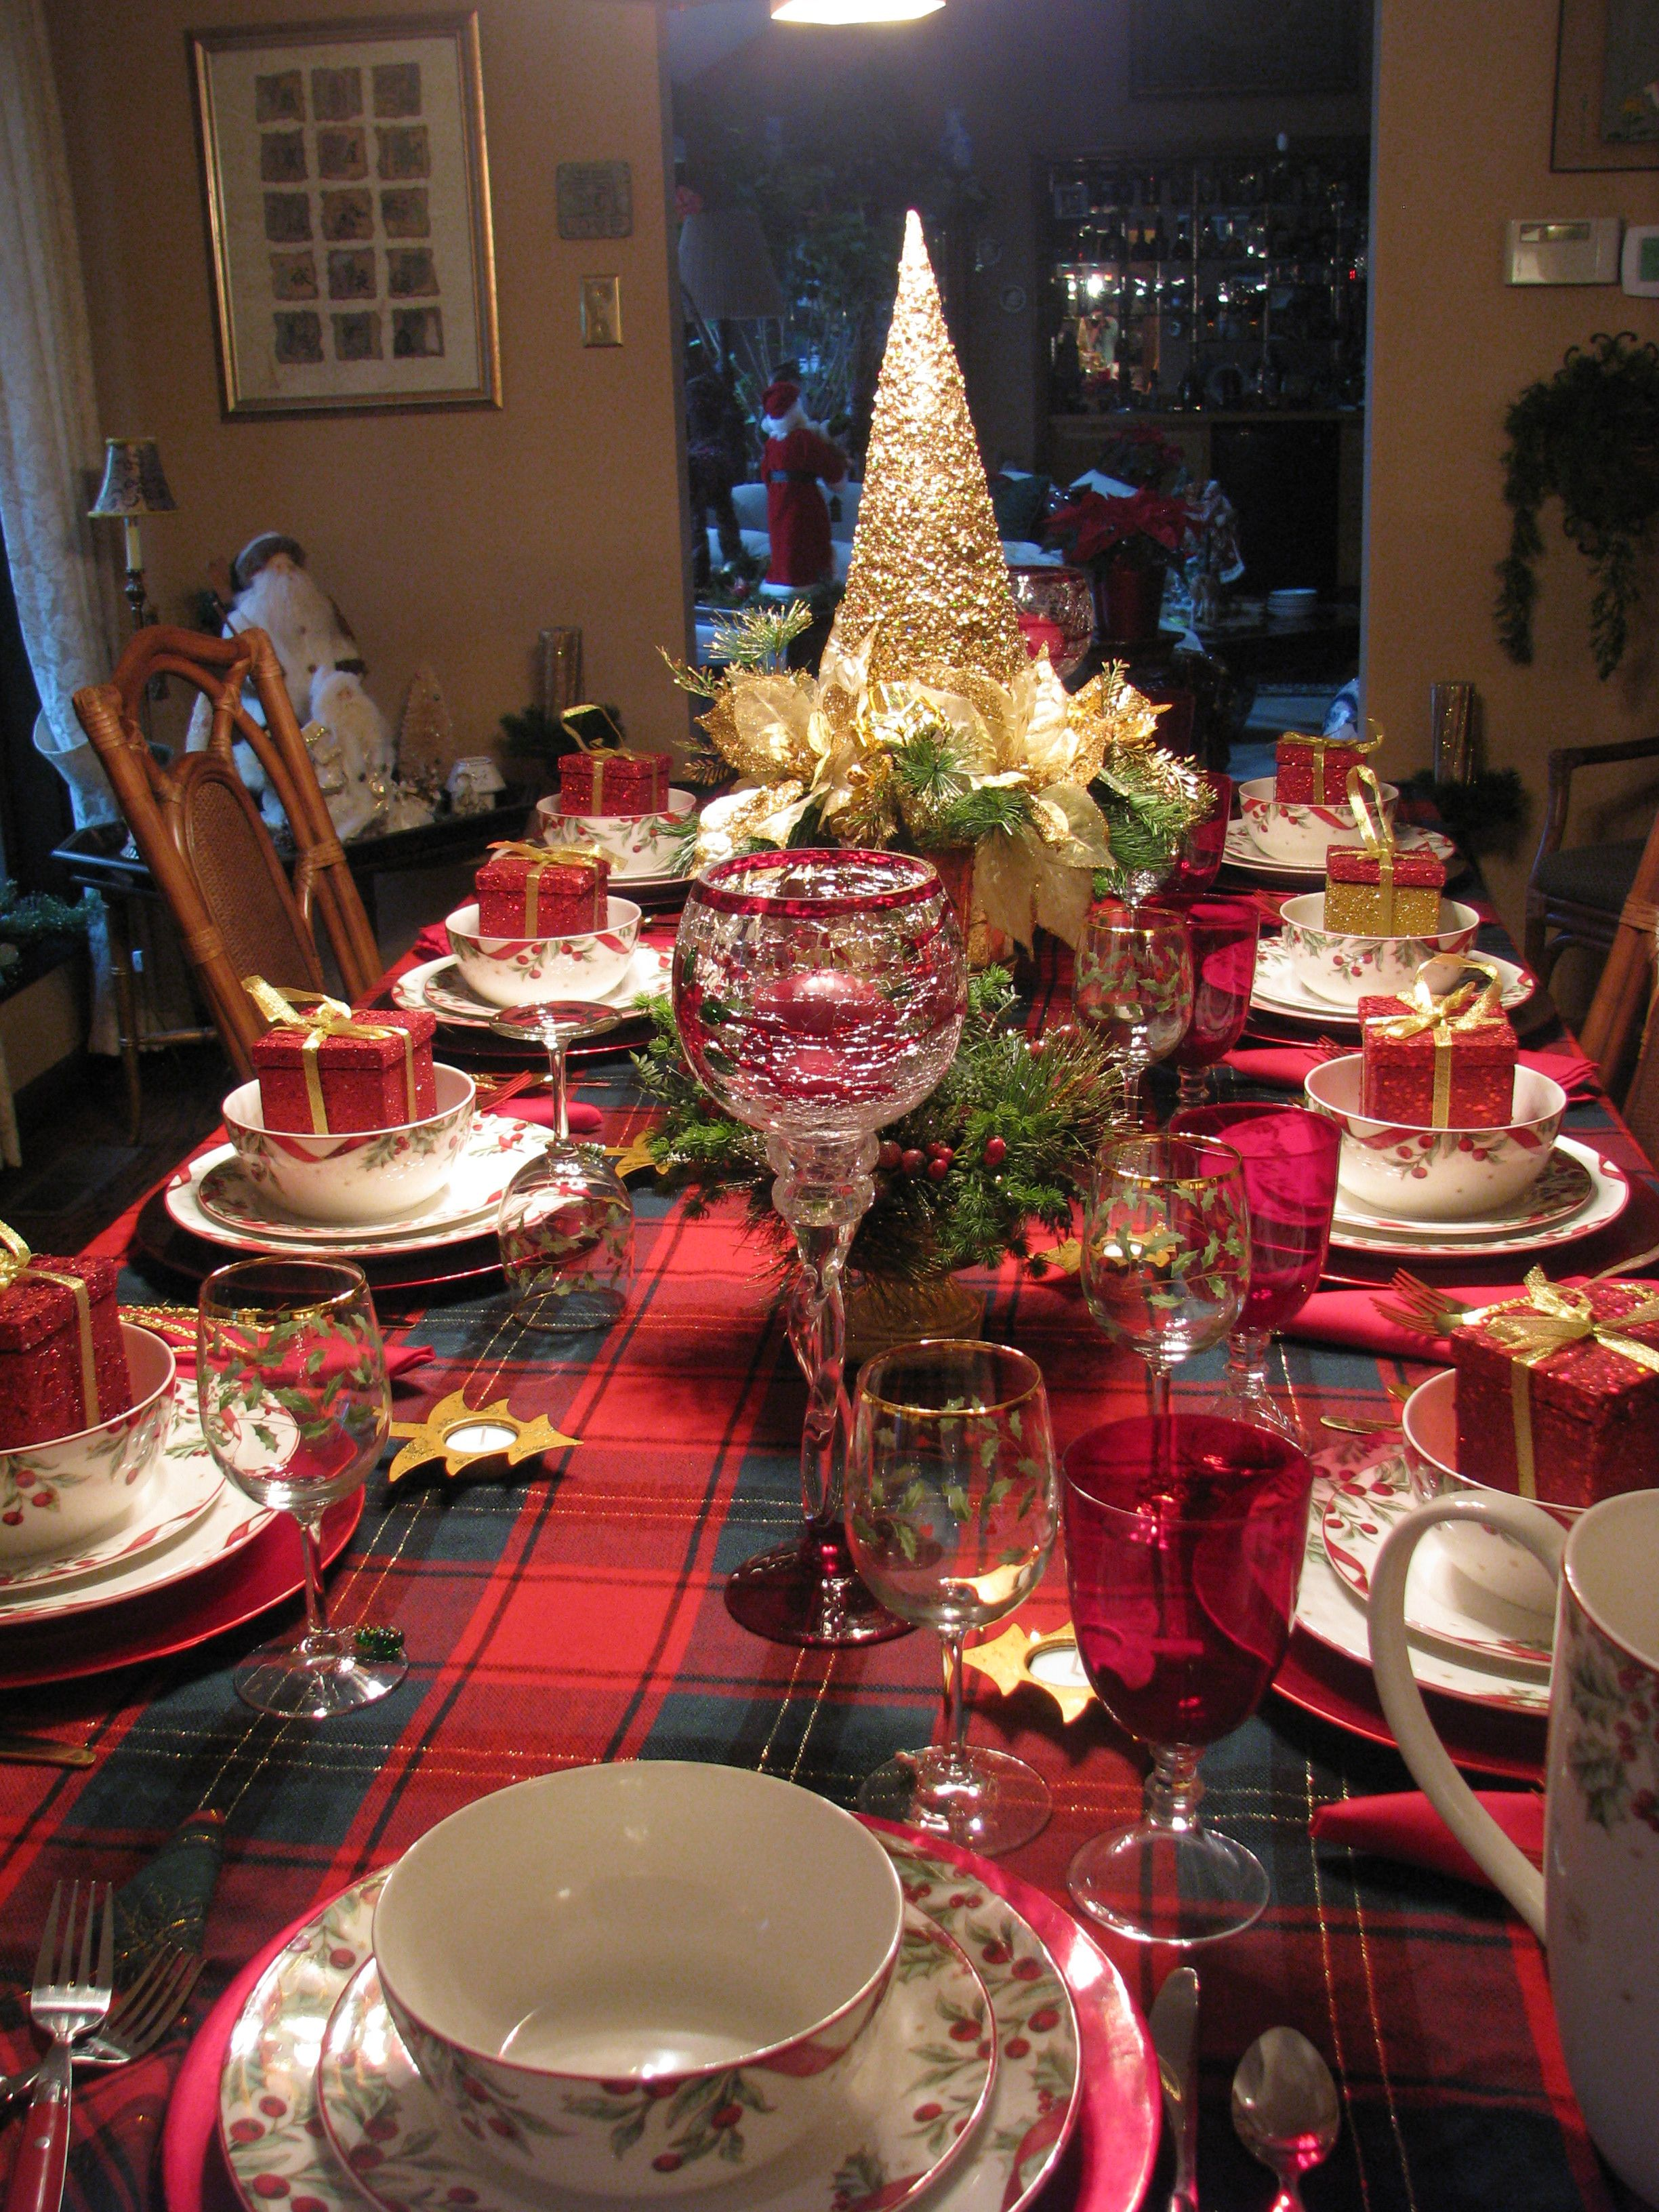 Christmas Table 2011 Www Designsbypinky Blogspot Com Christmas Table Christmas Dining Table Christmas Table Decorations